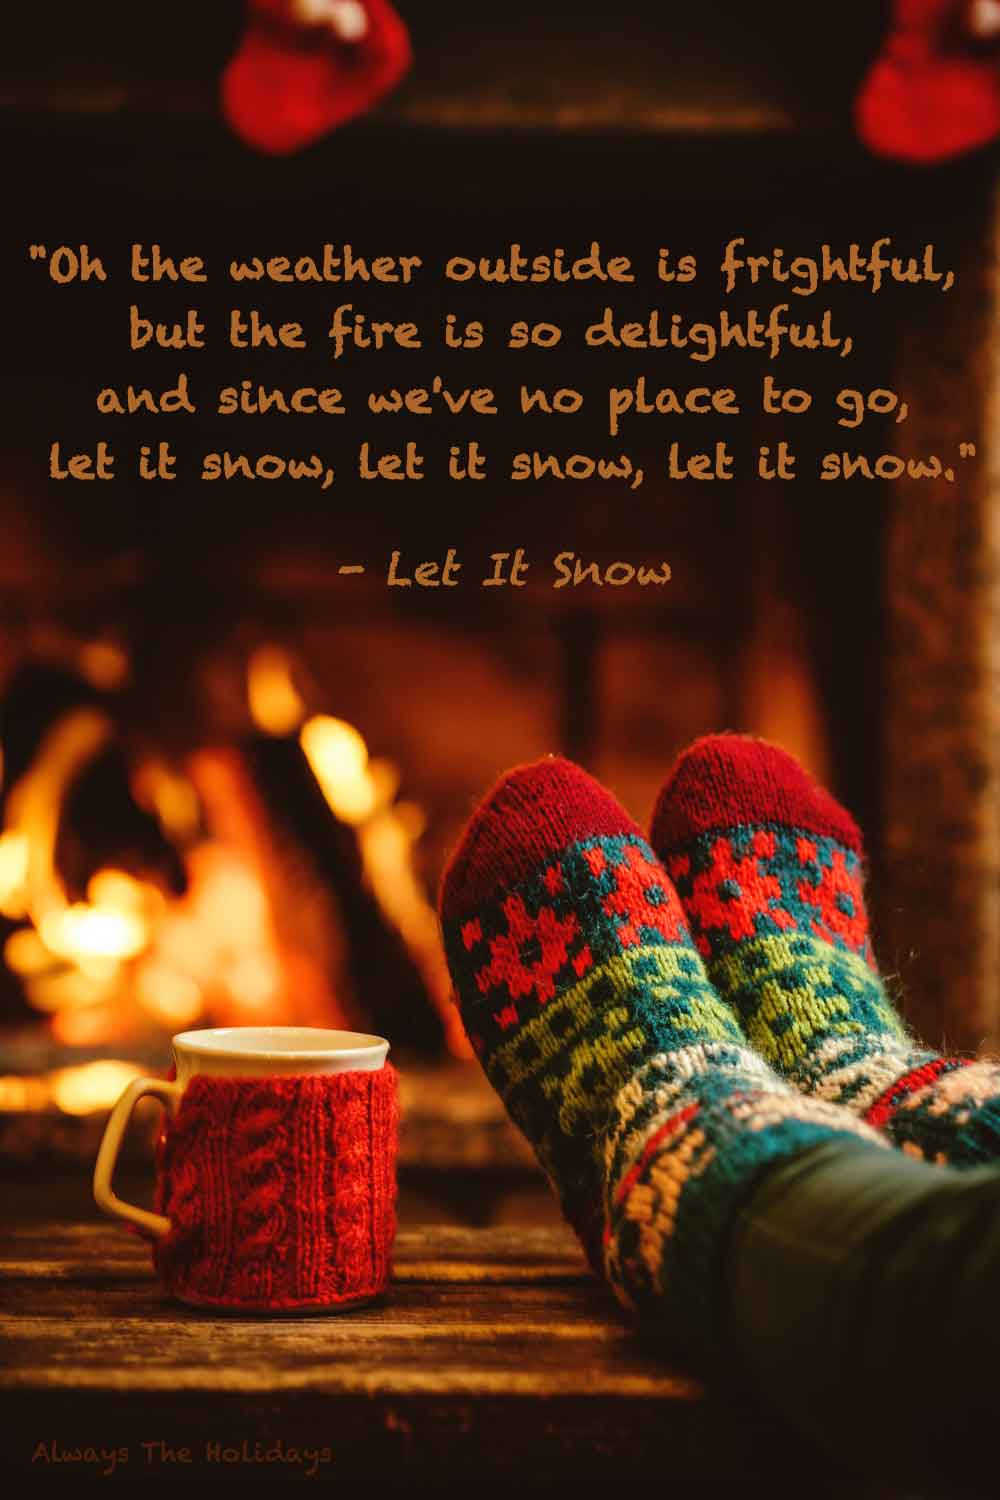 Feet on a coffee table with festive socks next to a mug in front of a crackling fire with a text overlay of quotes from Christmas songs.